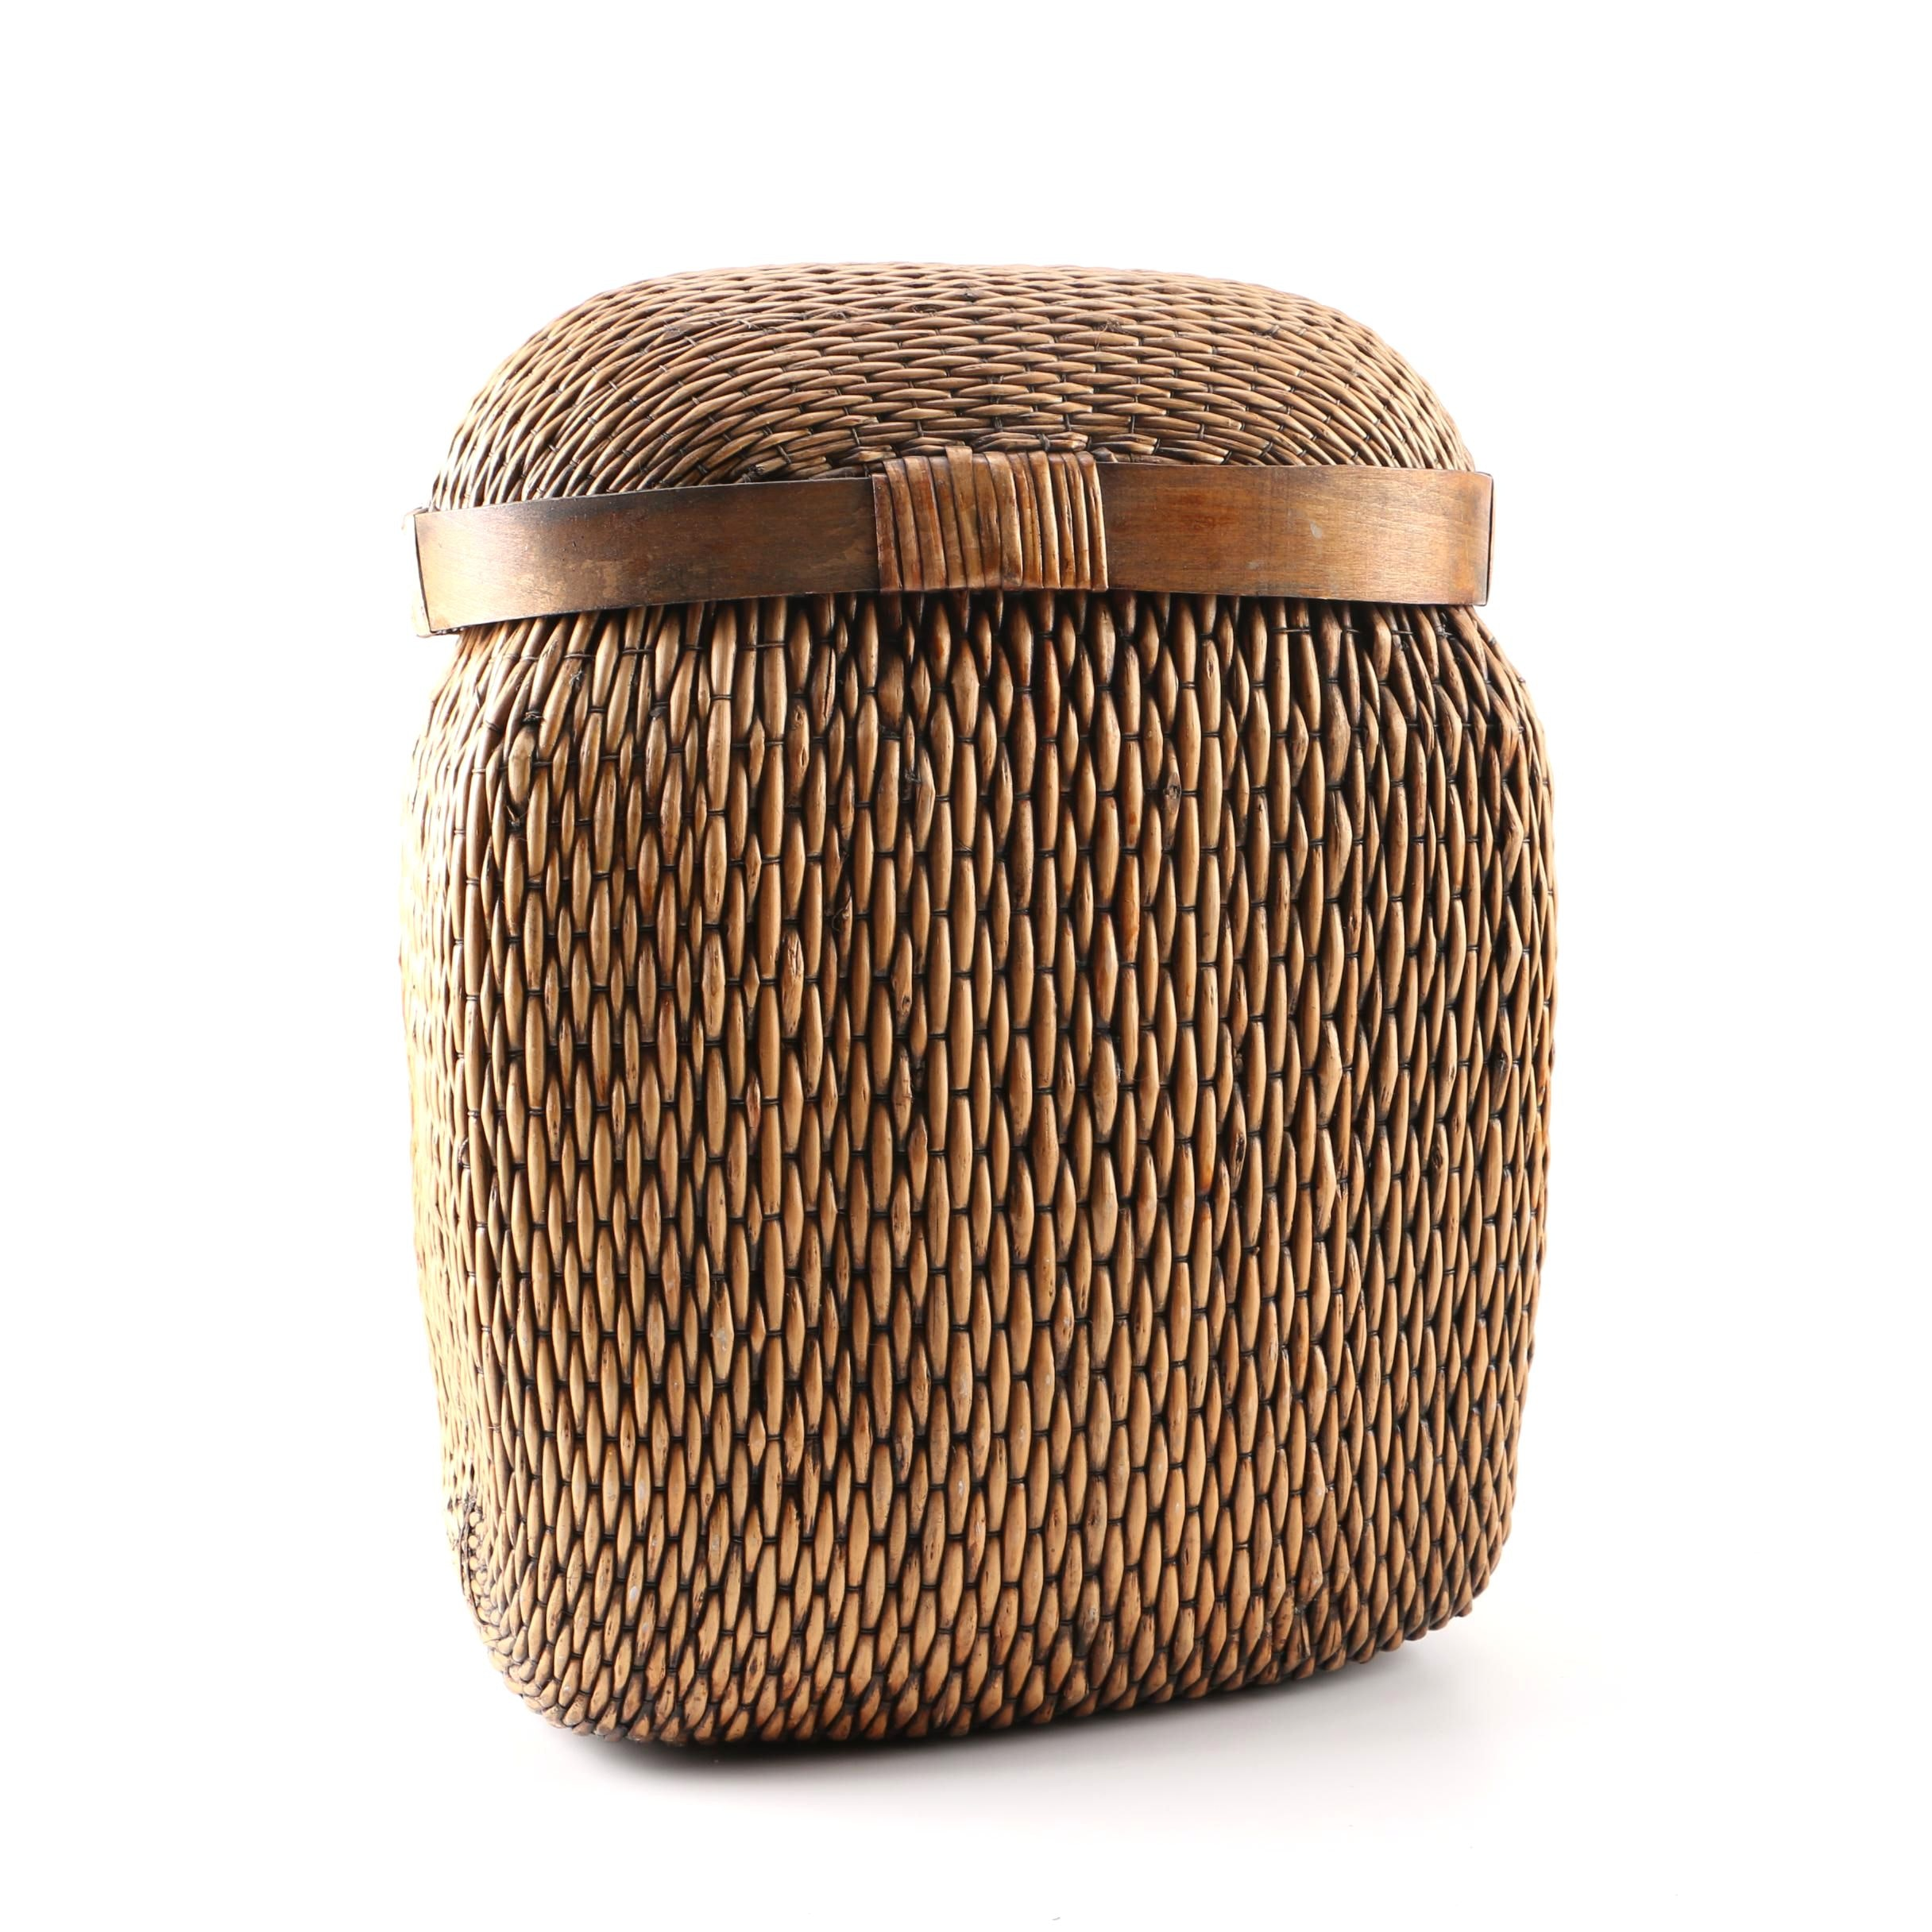 Decorative Rattan Storage Box